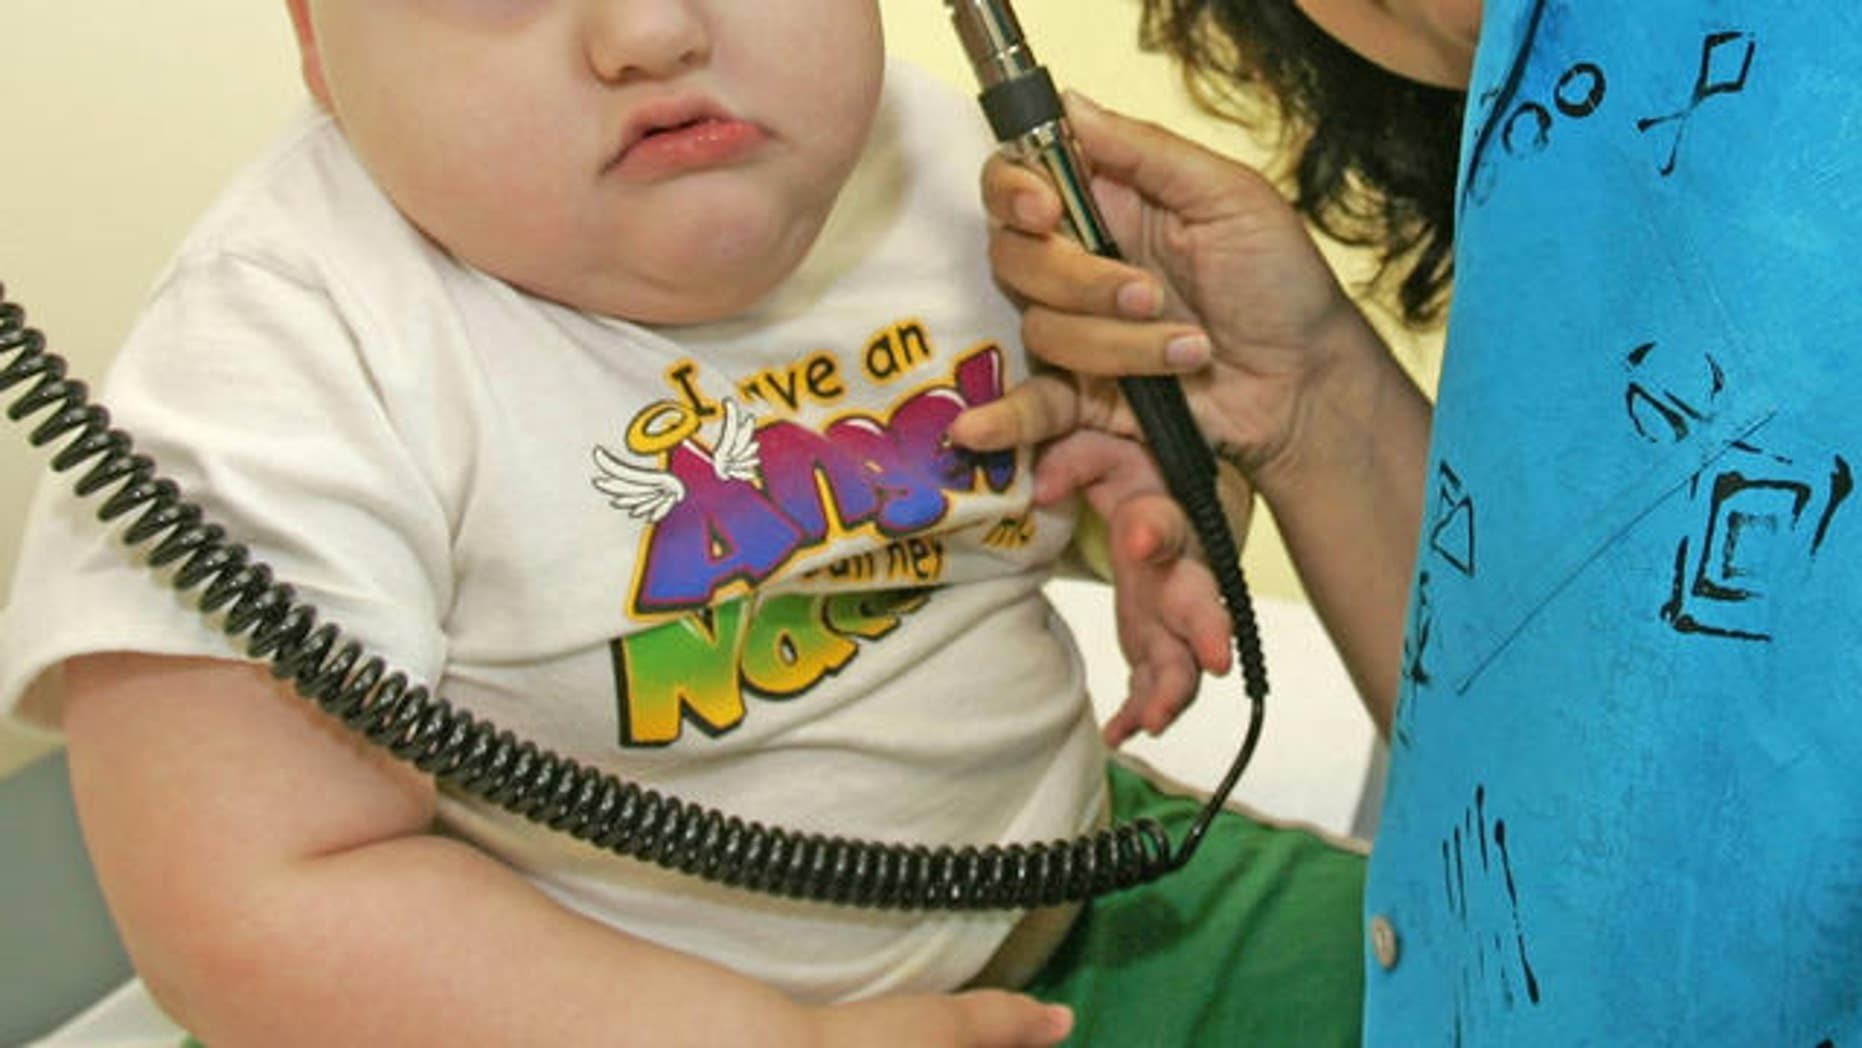 ** ADVANCE FOR MONDAY, MAY 29 ** Damon Diamond, 2, of Bryant, Ark., is examined by Dr. Samiya Razzaq at an Arkansas Children's Hospital clinic Friday, May 26, 2006, in Little Rock, Ark. Two years after Arkansas instituted first-in-the-nation obesity testing for public school students, data shows that the percentage of overweight children remains the same, but at least it's not going up. (AP Photo/Danny Johnston)